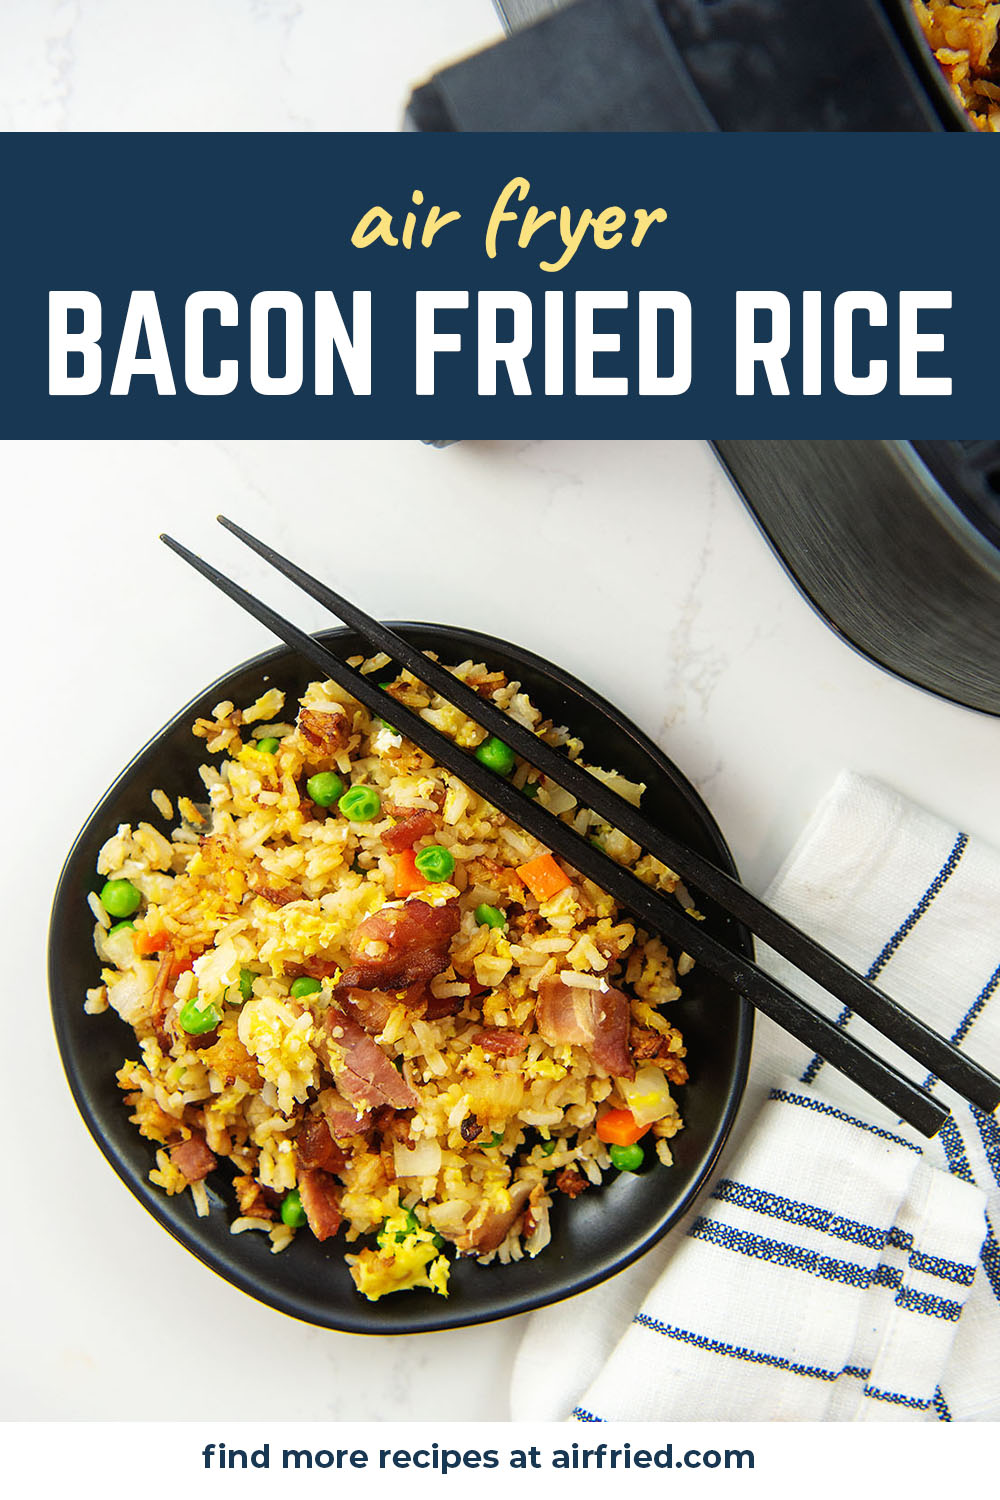 We tried making our fried rice in the air fryer and it worked really well!  It was nice to cook everything in the basket then just dump it out on our plates!